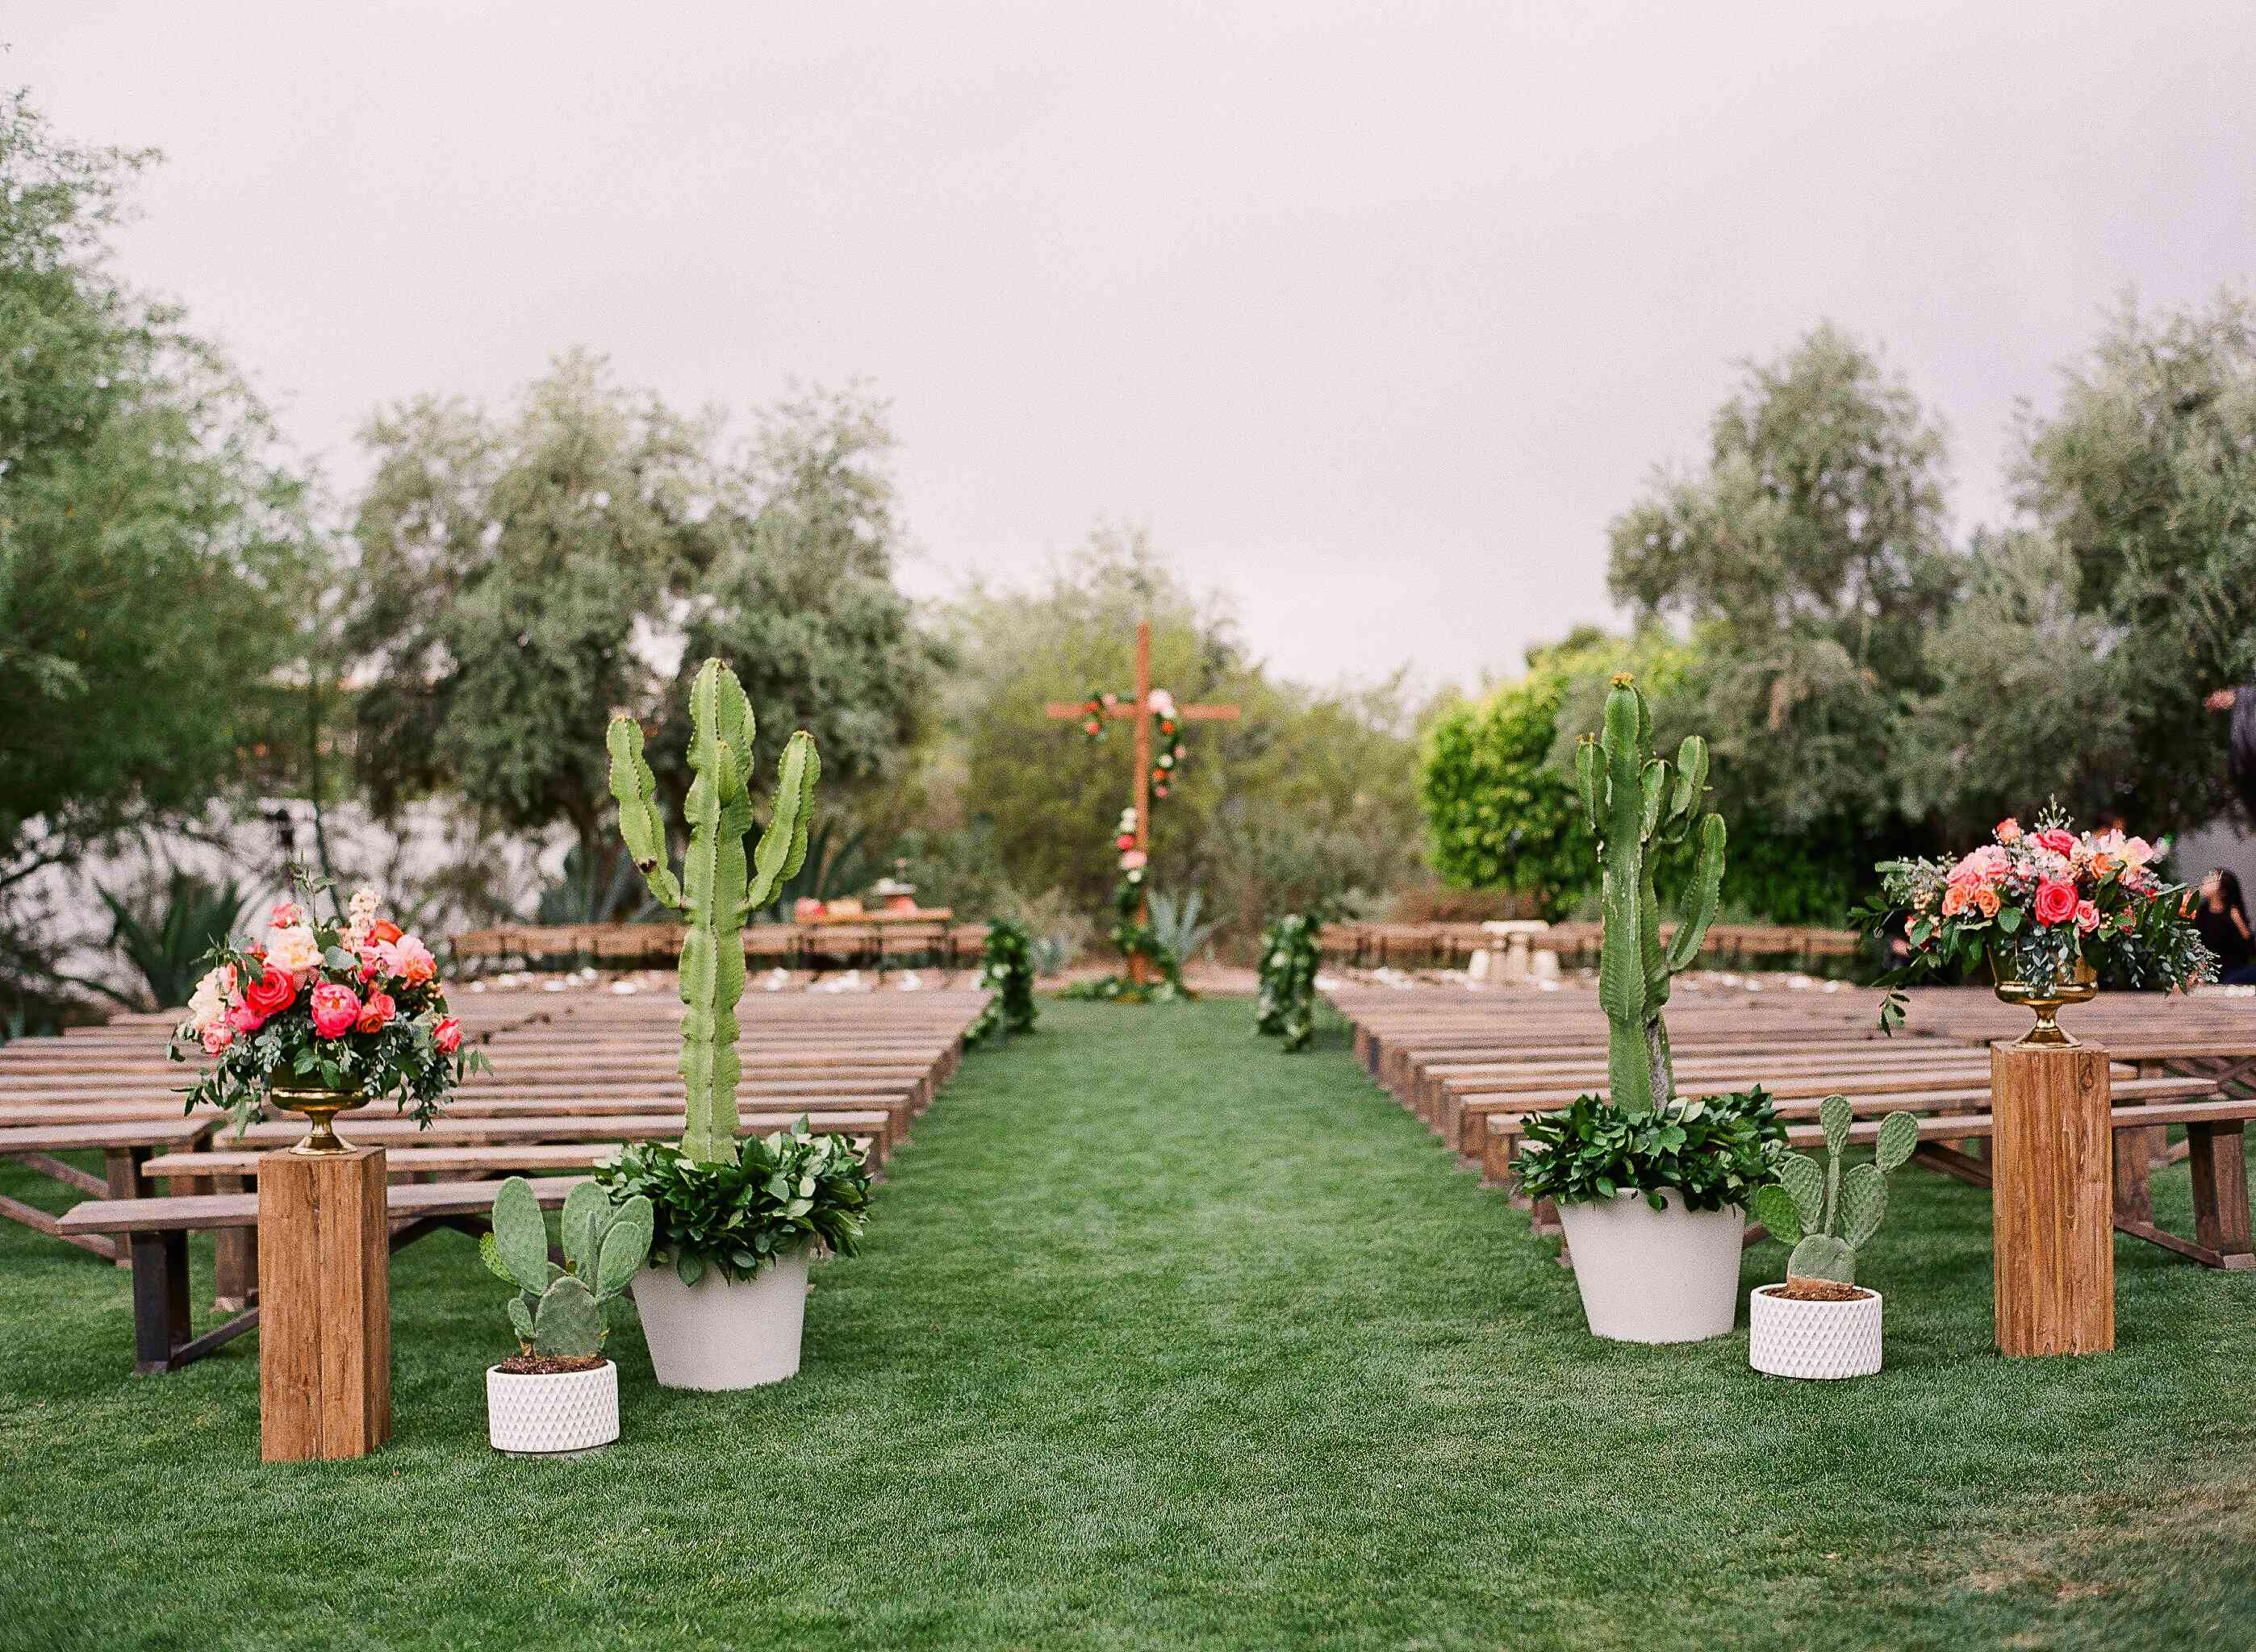 View looking down wedding aisle with tall cacti and pink flowers on either side of entrance